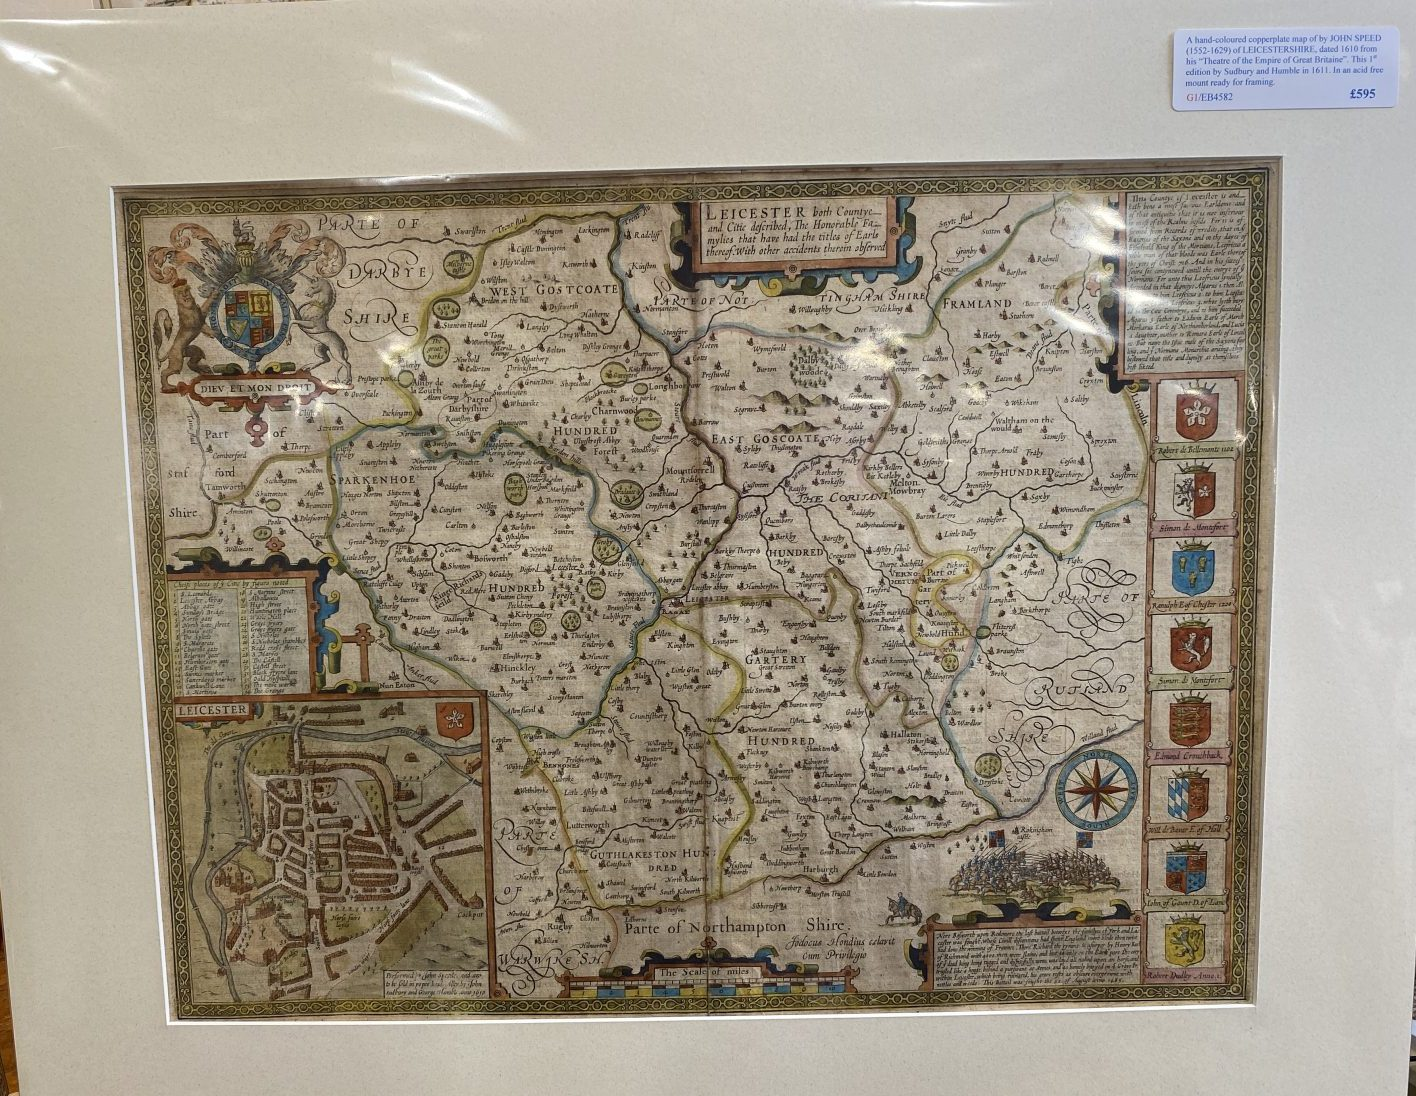 G1 - A Hand-coloured copperplate map of LEICESTERSHIRE by John Speed (1552-1629), from his Theatre of the Empire of Great Britaine. This 1st edition published by Sudbury & Humble  in 1611, English text verso. New acid free mount ready for framing.   £595